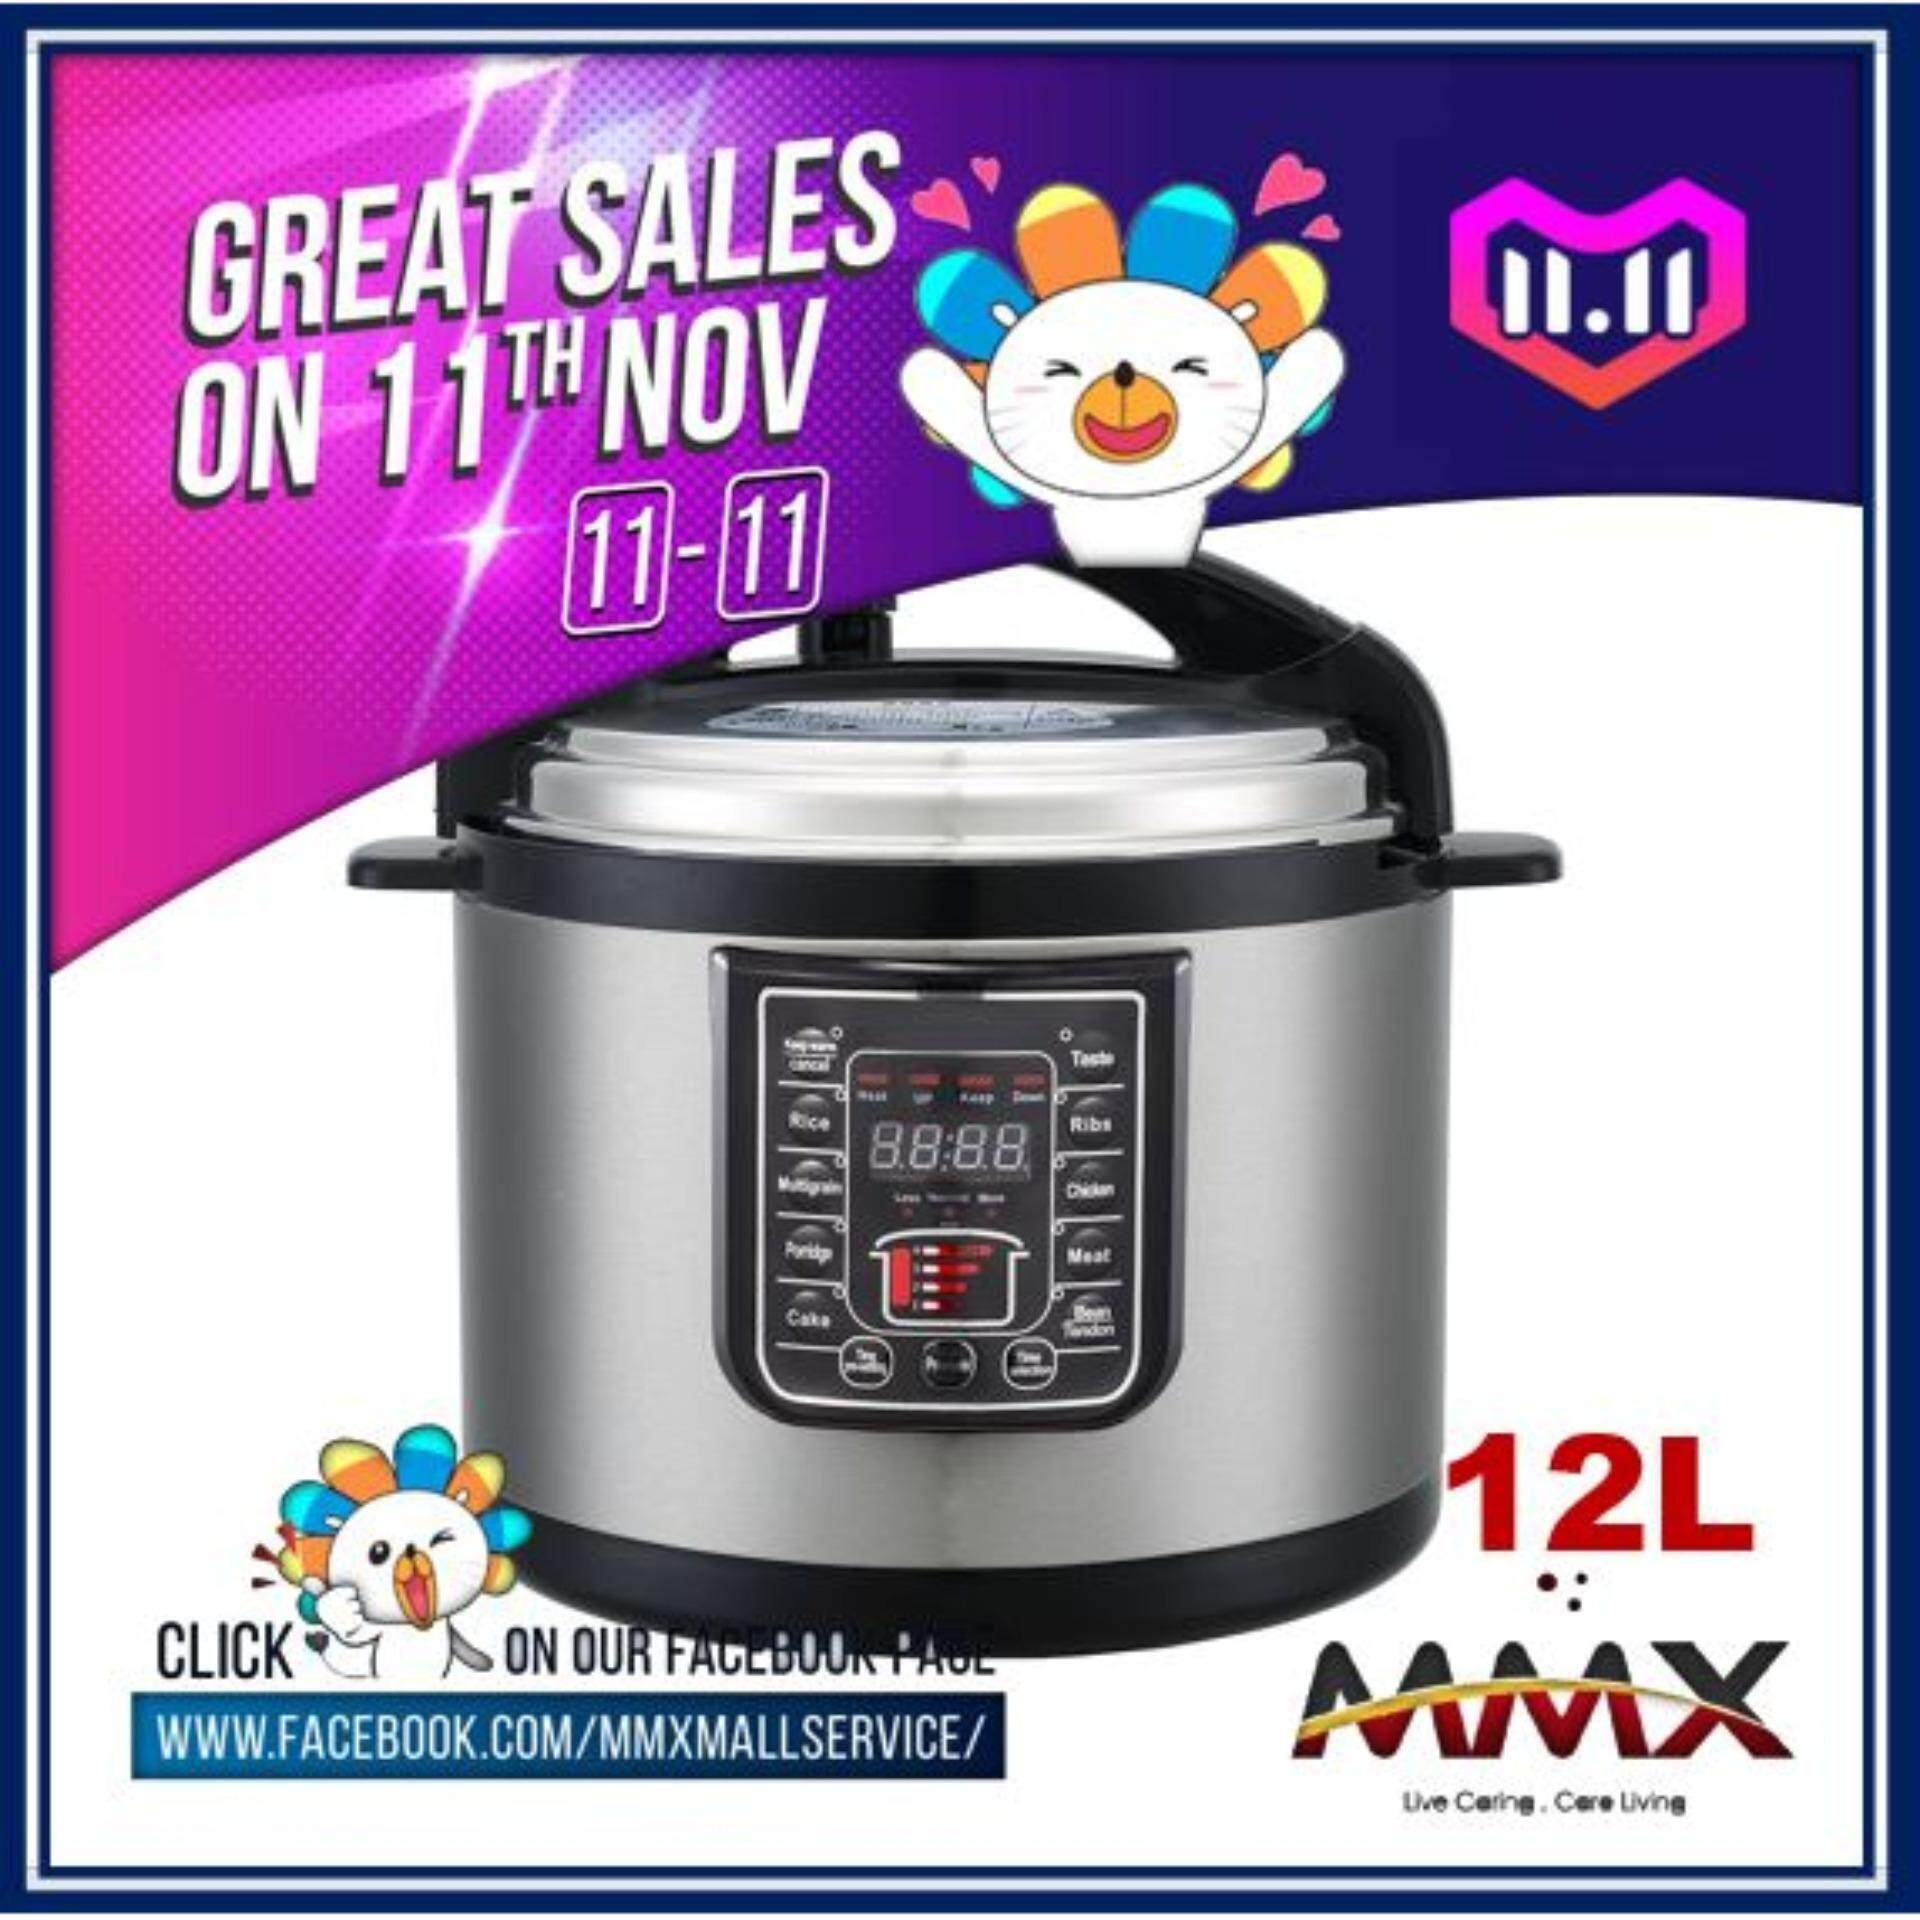 Electric Pressure Cookers Buy At Best Signora Wonder Cooker Mmx Ewant 12l Multi Functional Silver Ybd12 160 8